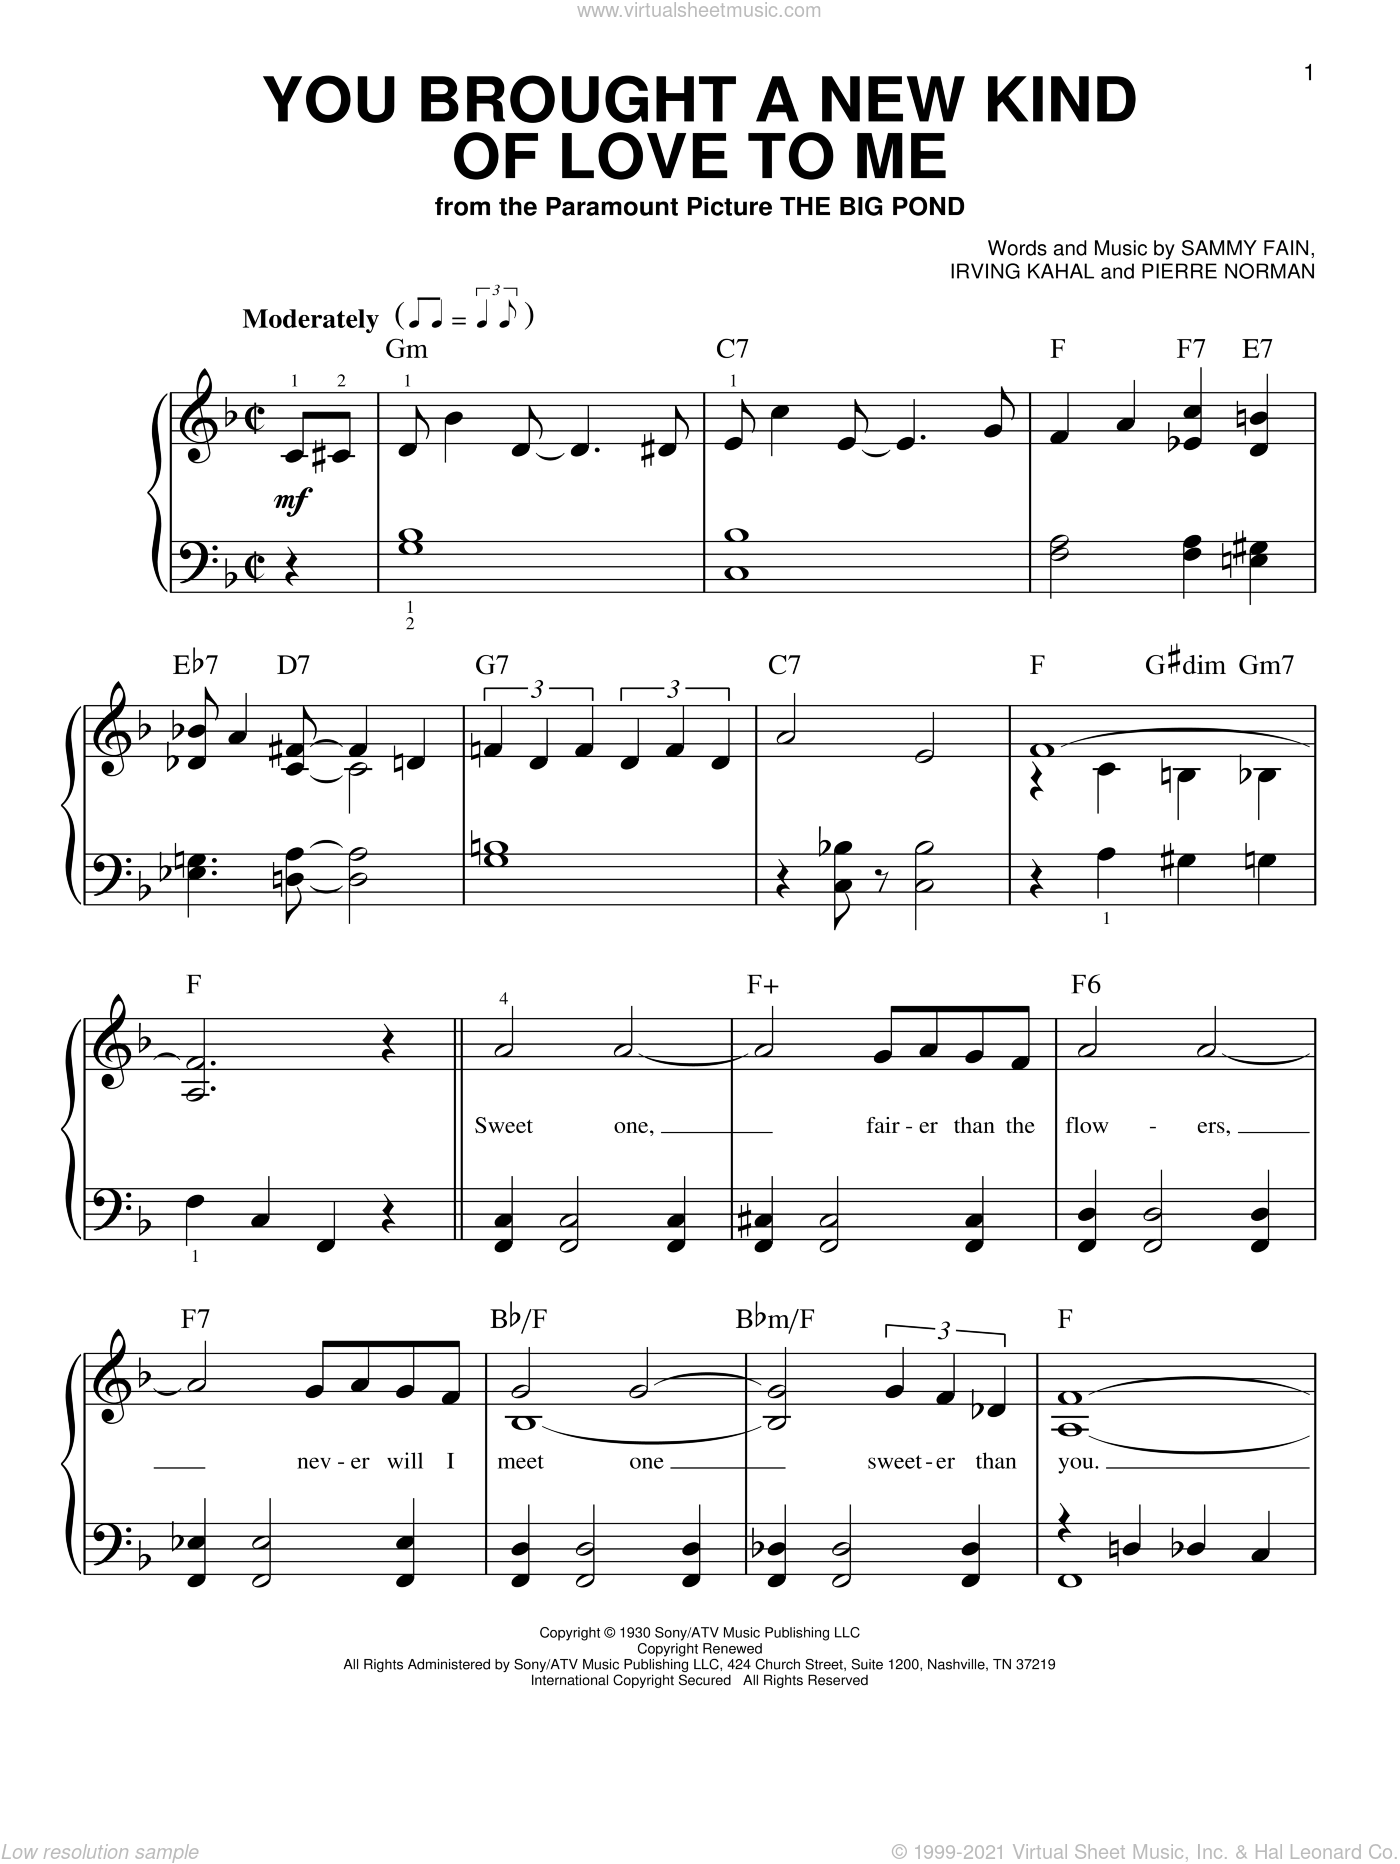 You Brought A New Kind Of Love To Me sheet music for piano solo by Sammy Fain and Irving Kahal. Score Image Preview.